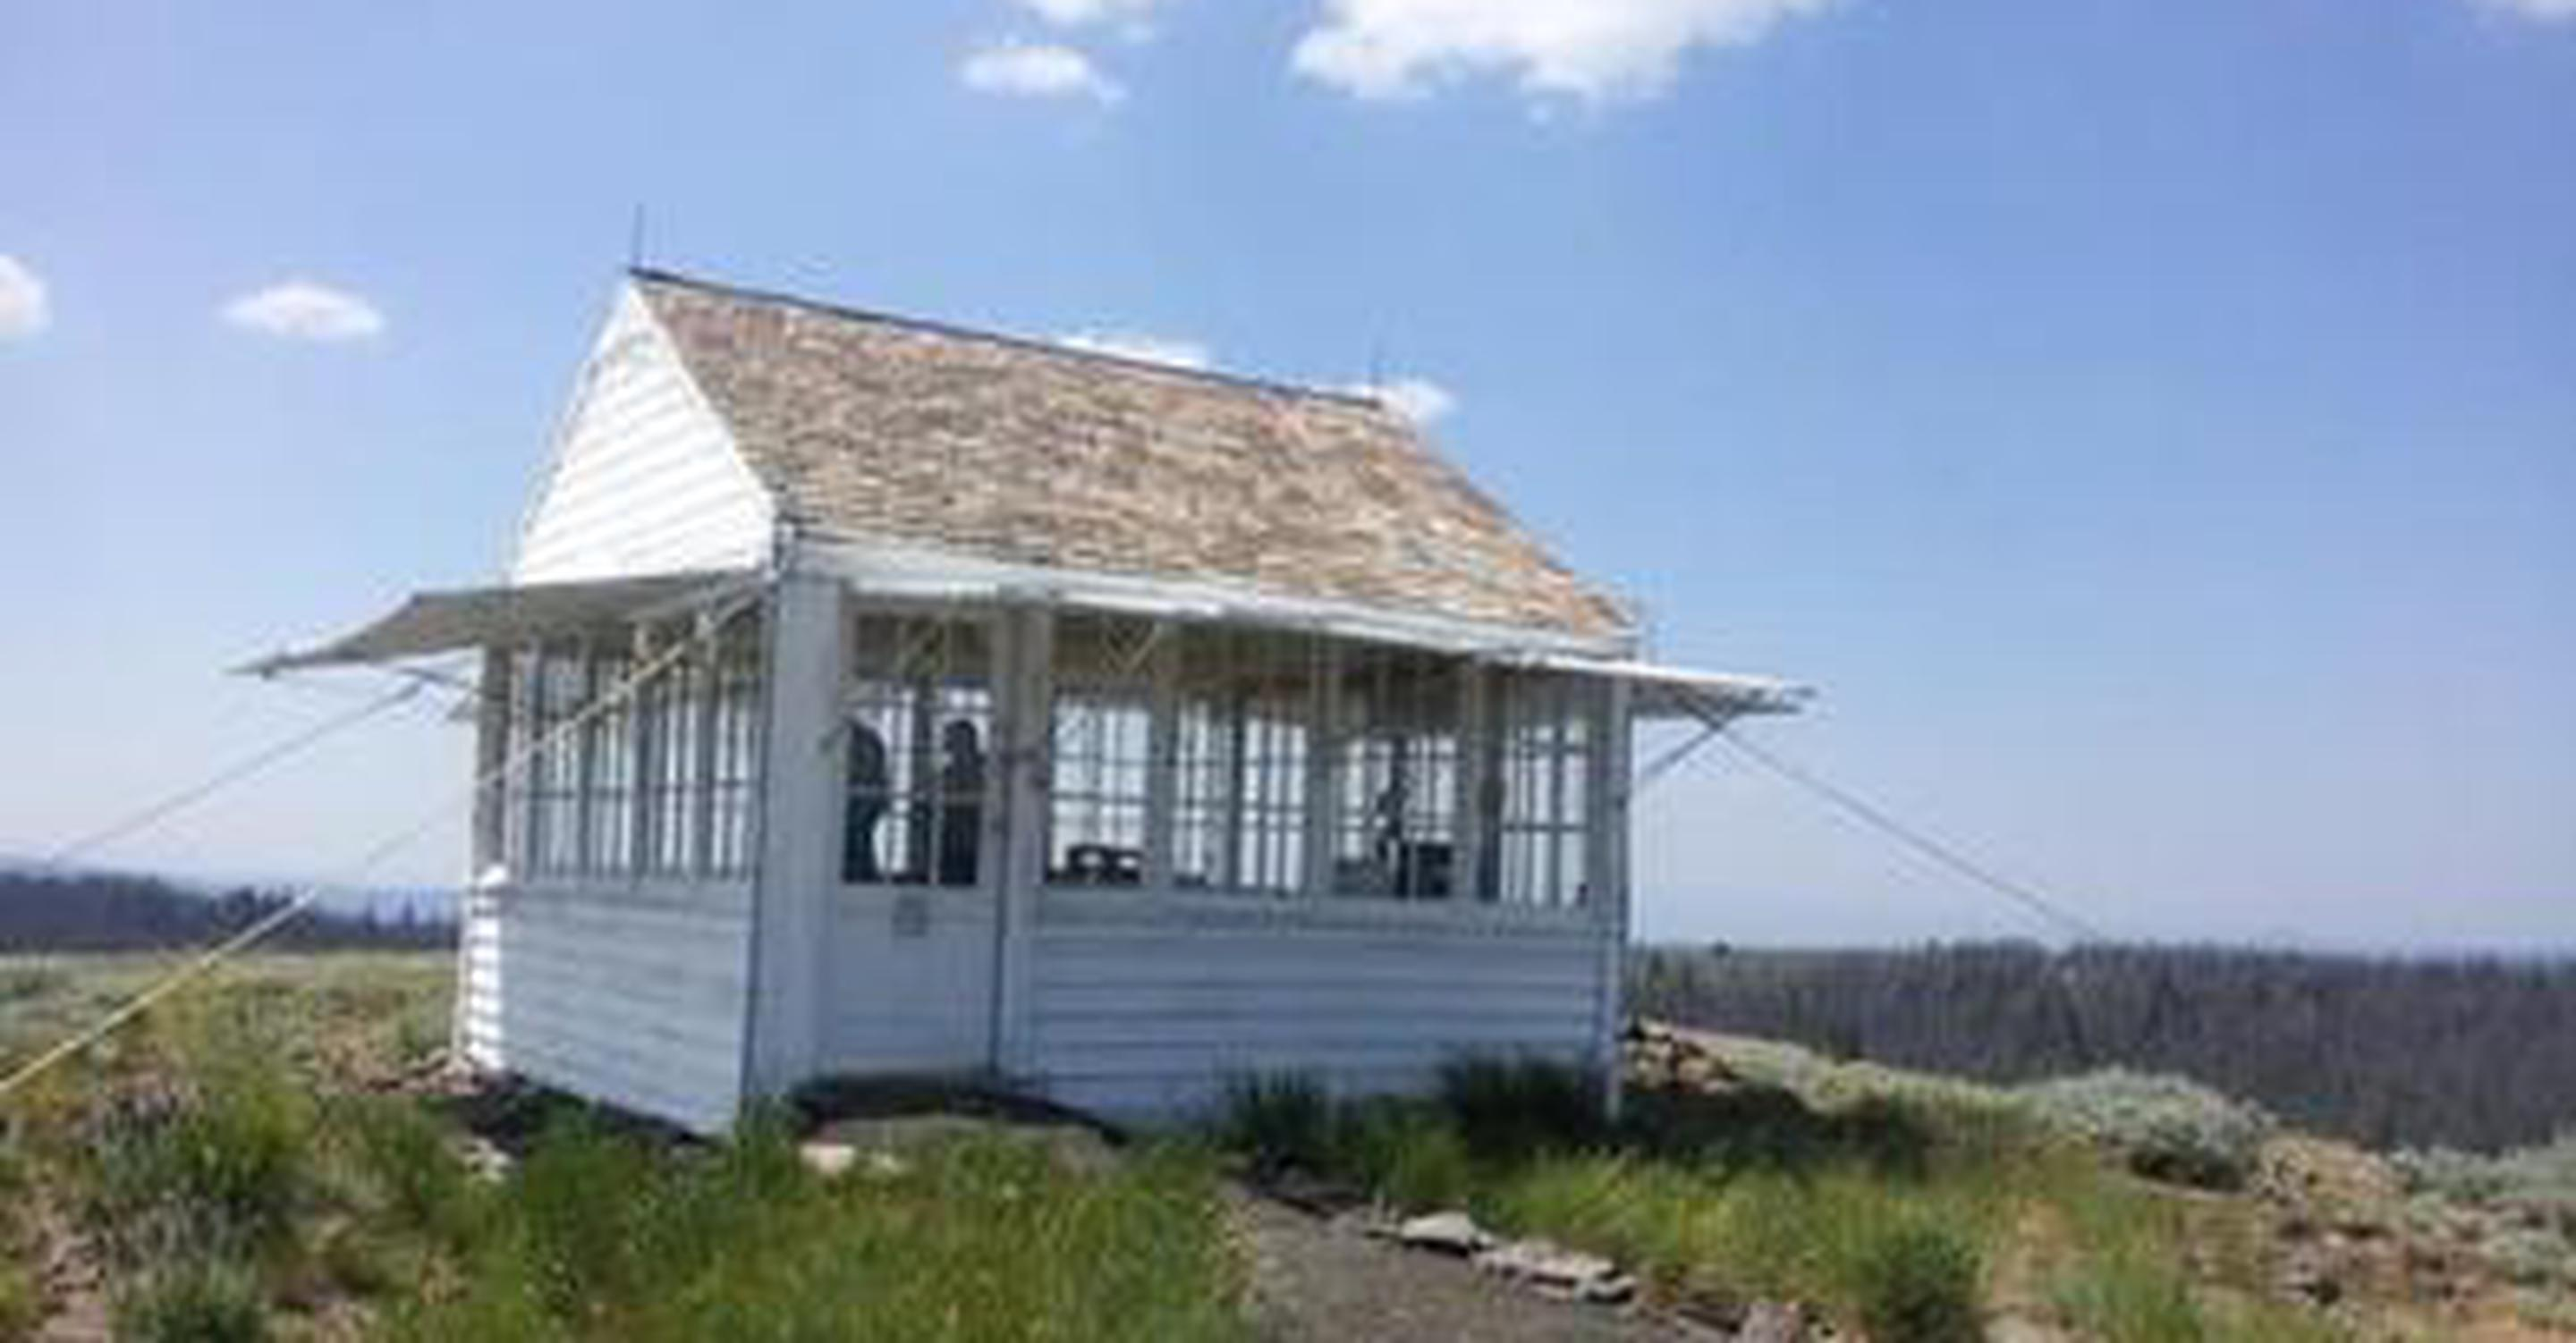 BALD BUTTE LOOKOUTLookout building with green grass, blue sky and white clouds.